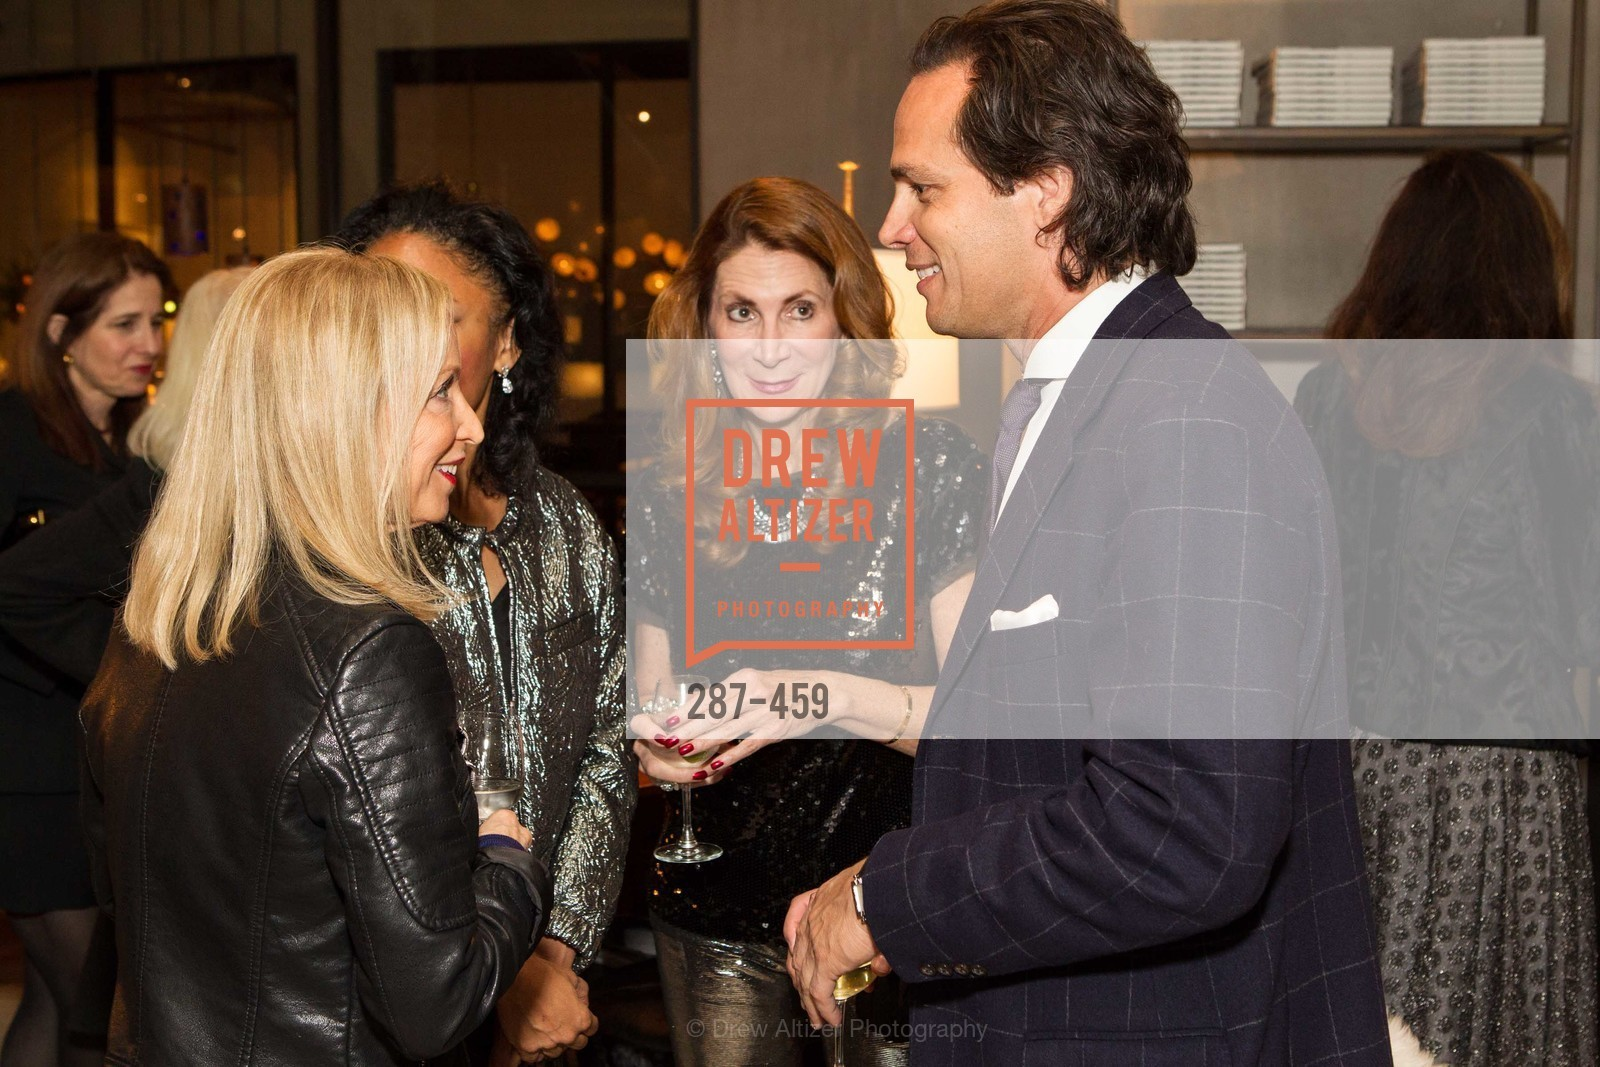 Shelley Gordon, Tanya Powell, Patricia Ferrin Loucks, Thomas Del Beccaro, 2014 SAN FRANCISCO BALLET OPENING NIGHT GALA Patron and Sponsor Reception, US. US, January 14th, 2014,Drew Altizer, Drew Altizer Photography, full-service agency, private events, San Francisco photographer, photographer california